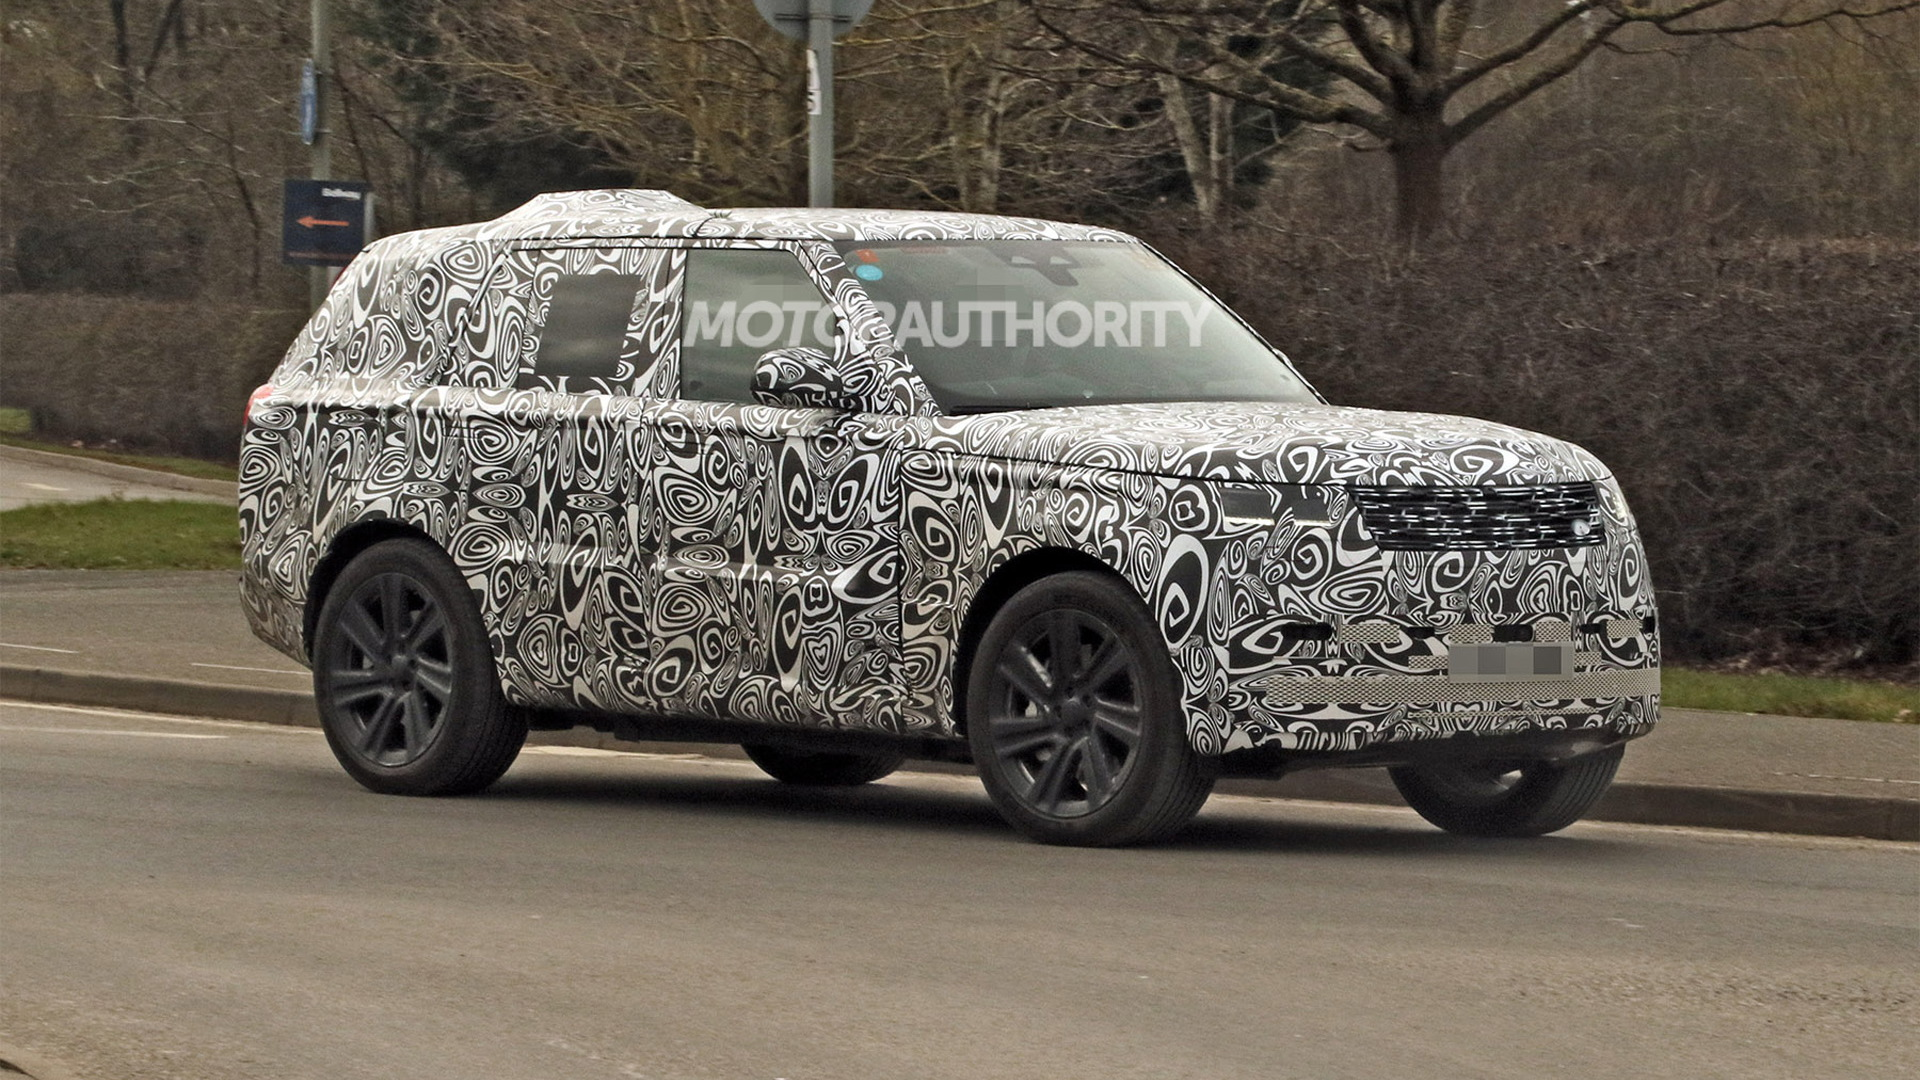 2022 Land Rover Range Rover spy shots - Photo credit: S. Baldauf/SB-Medien